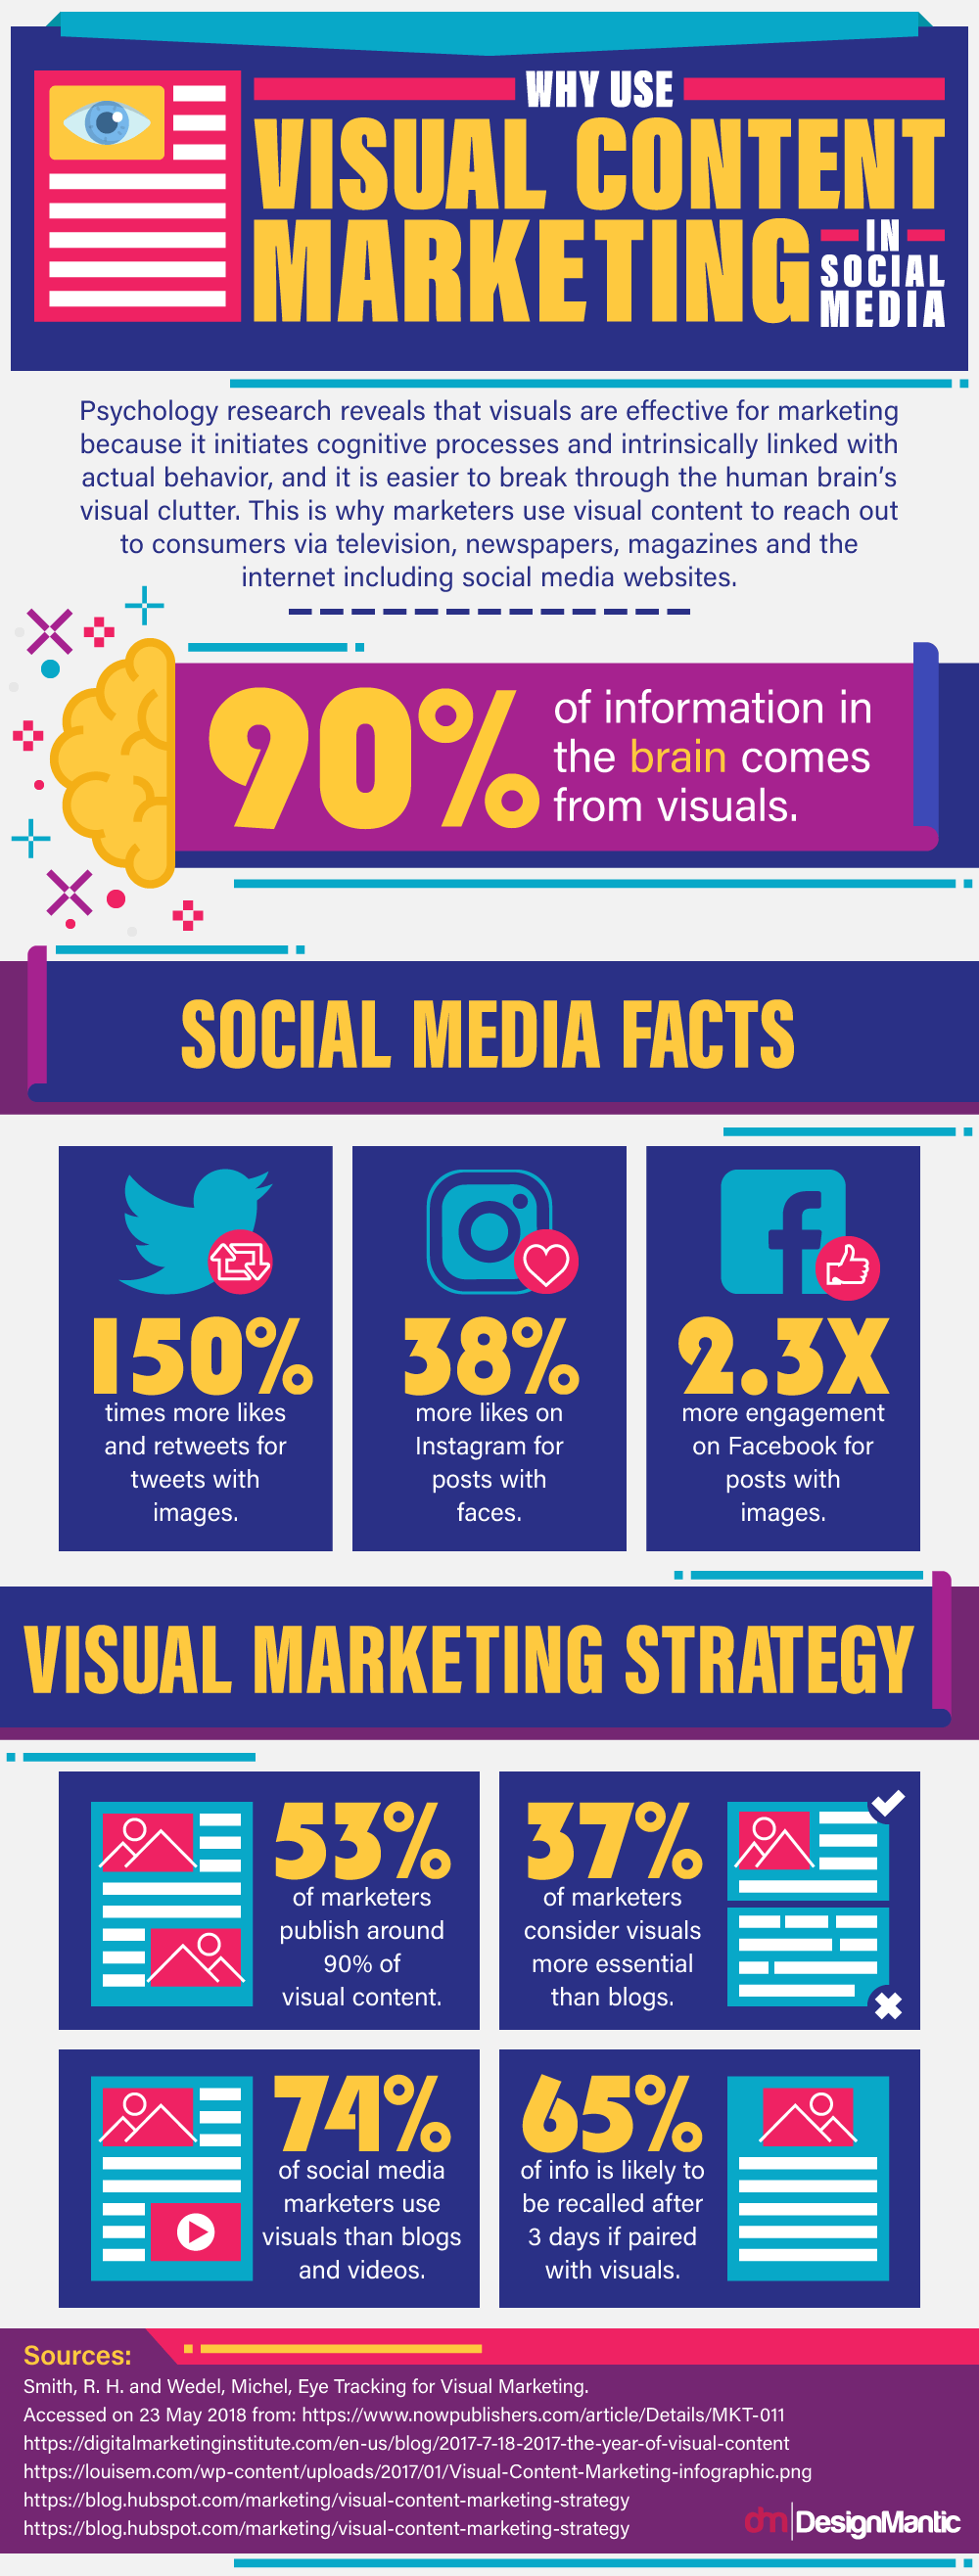 Infographic on Why use visual content in marketing